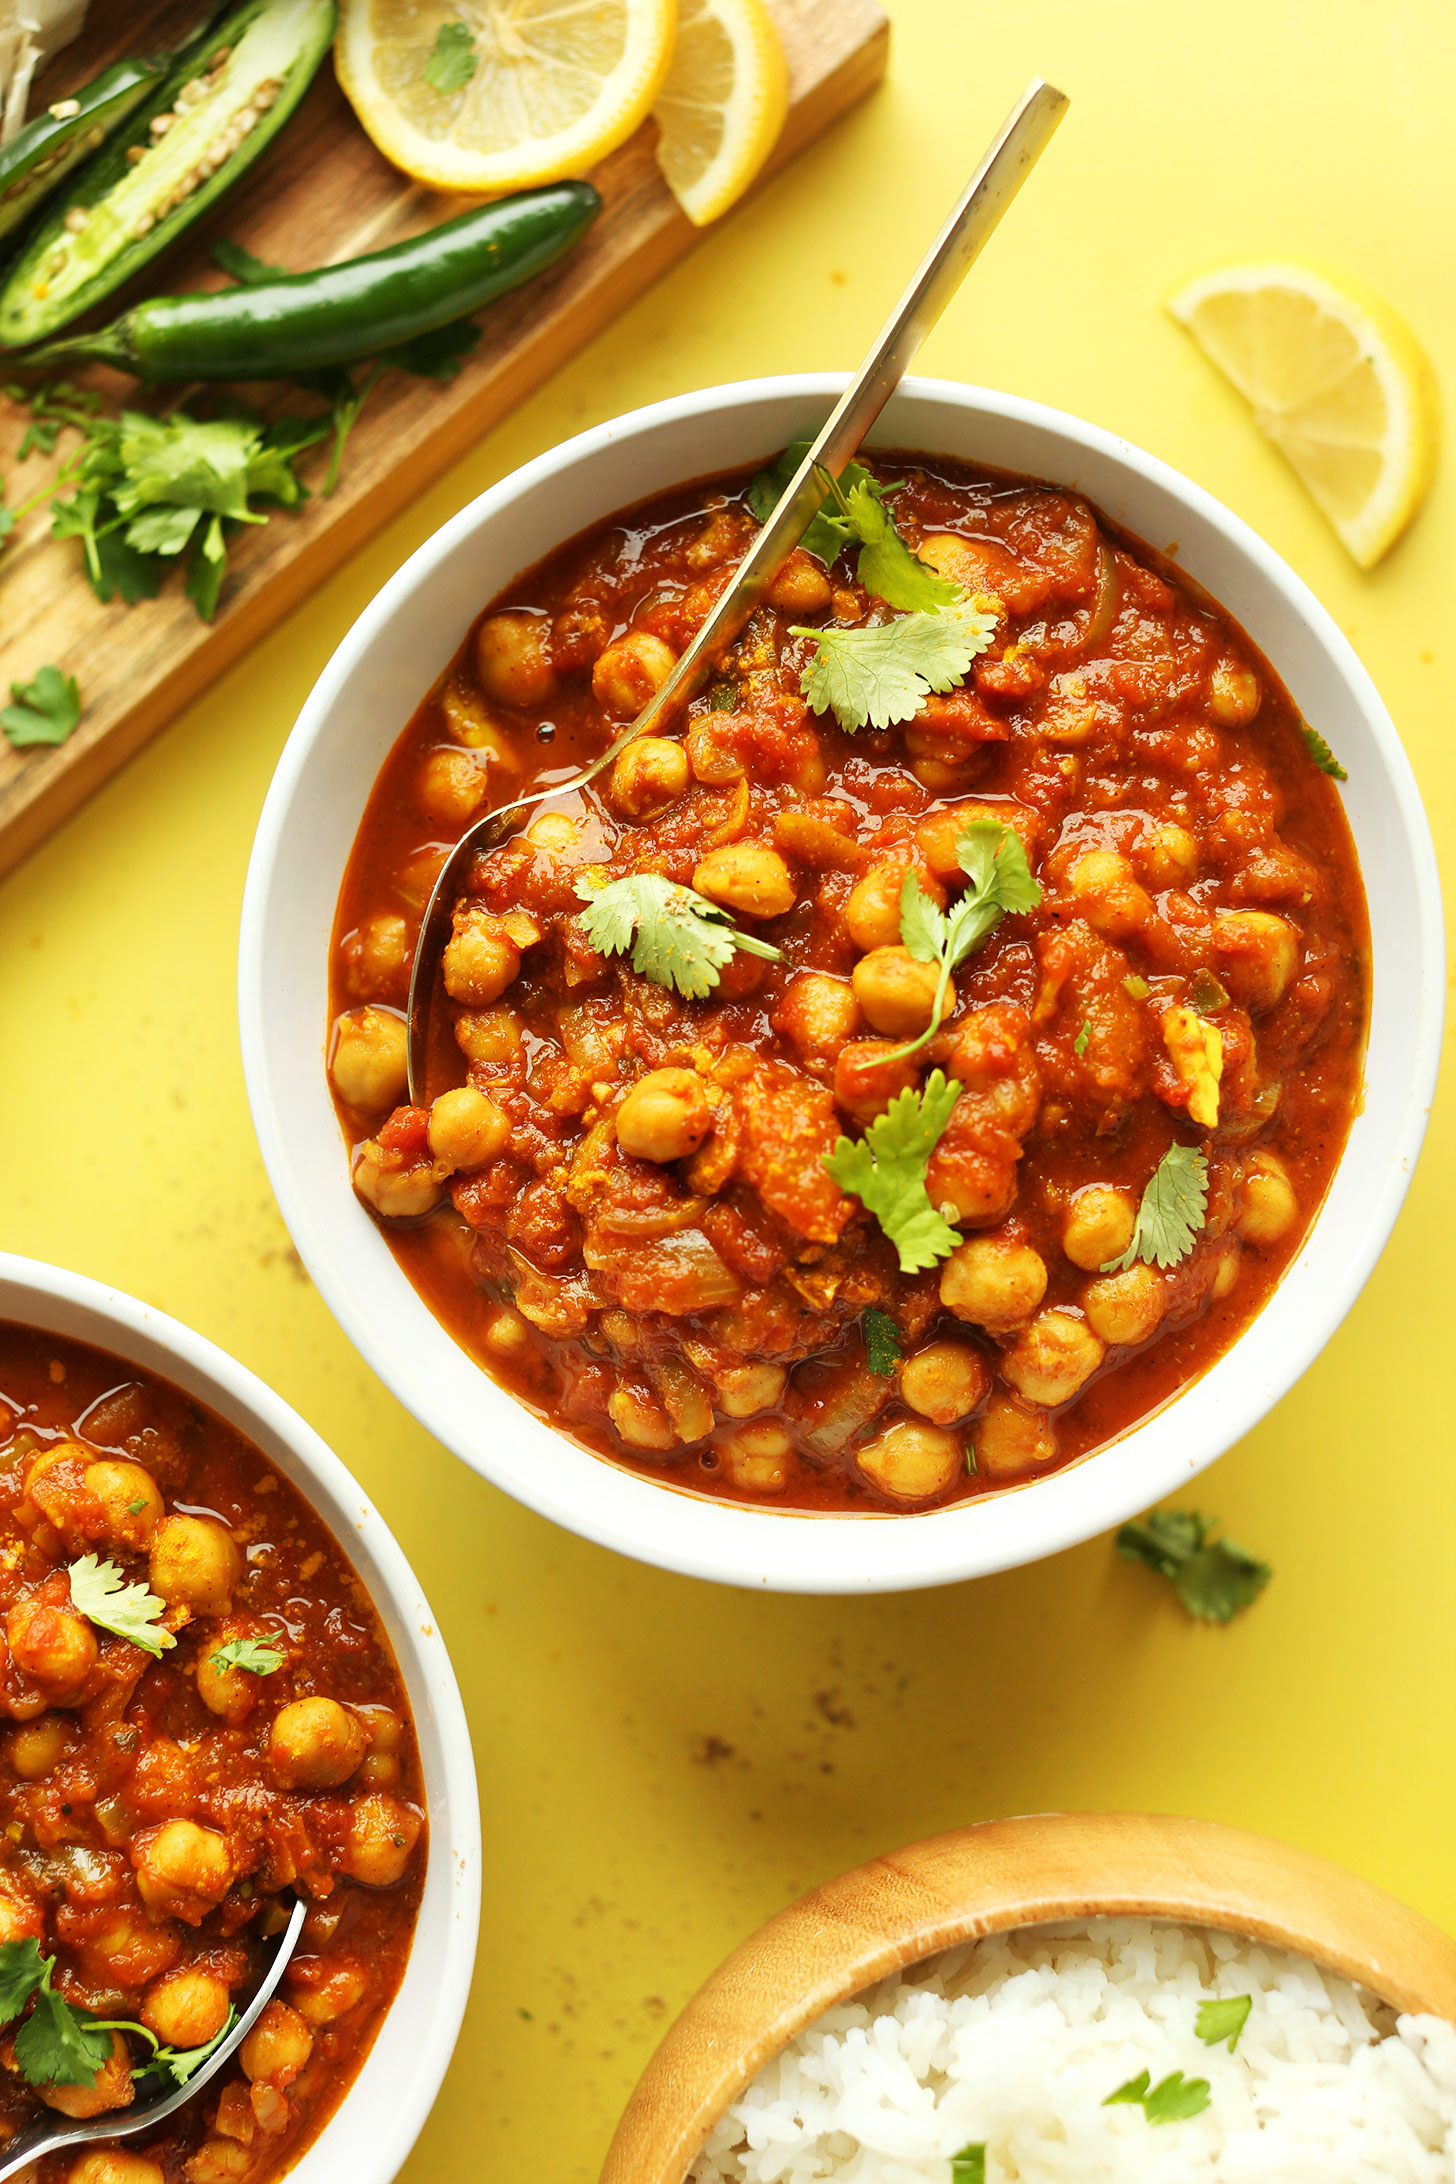 Bowls of our healthy vegan Chana Masala recipe